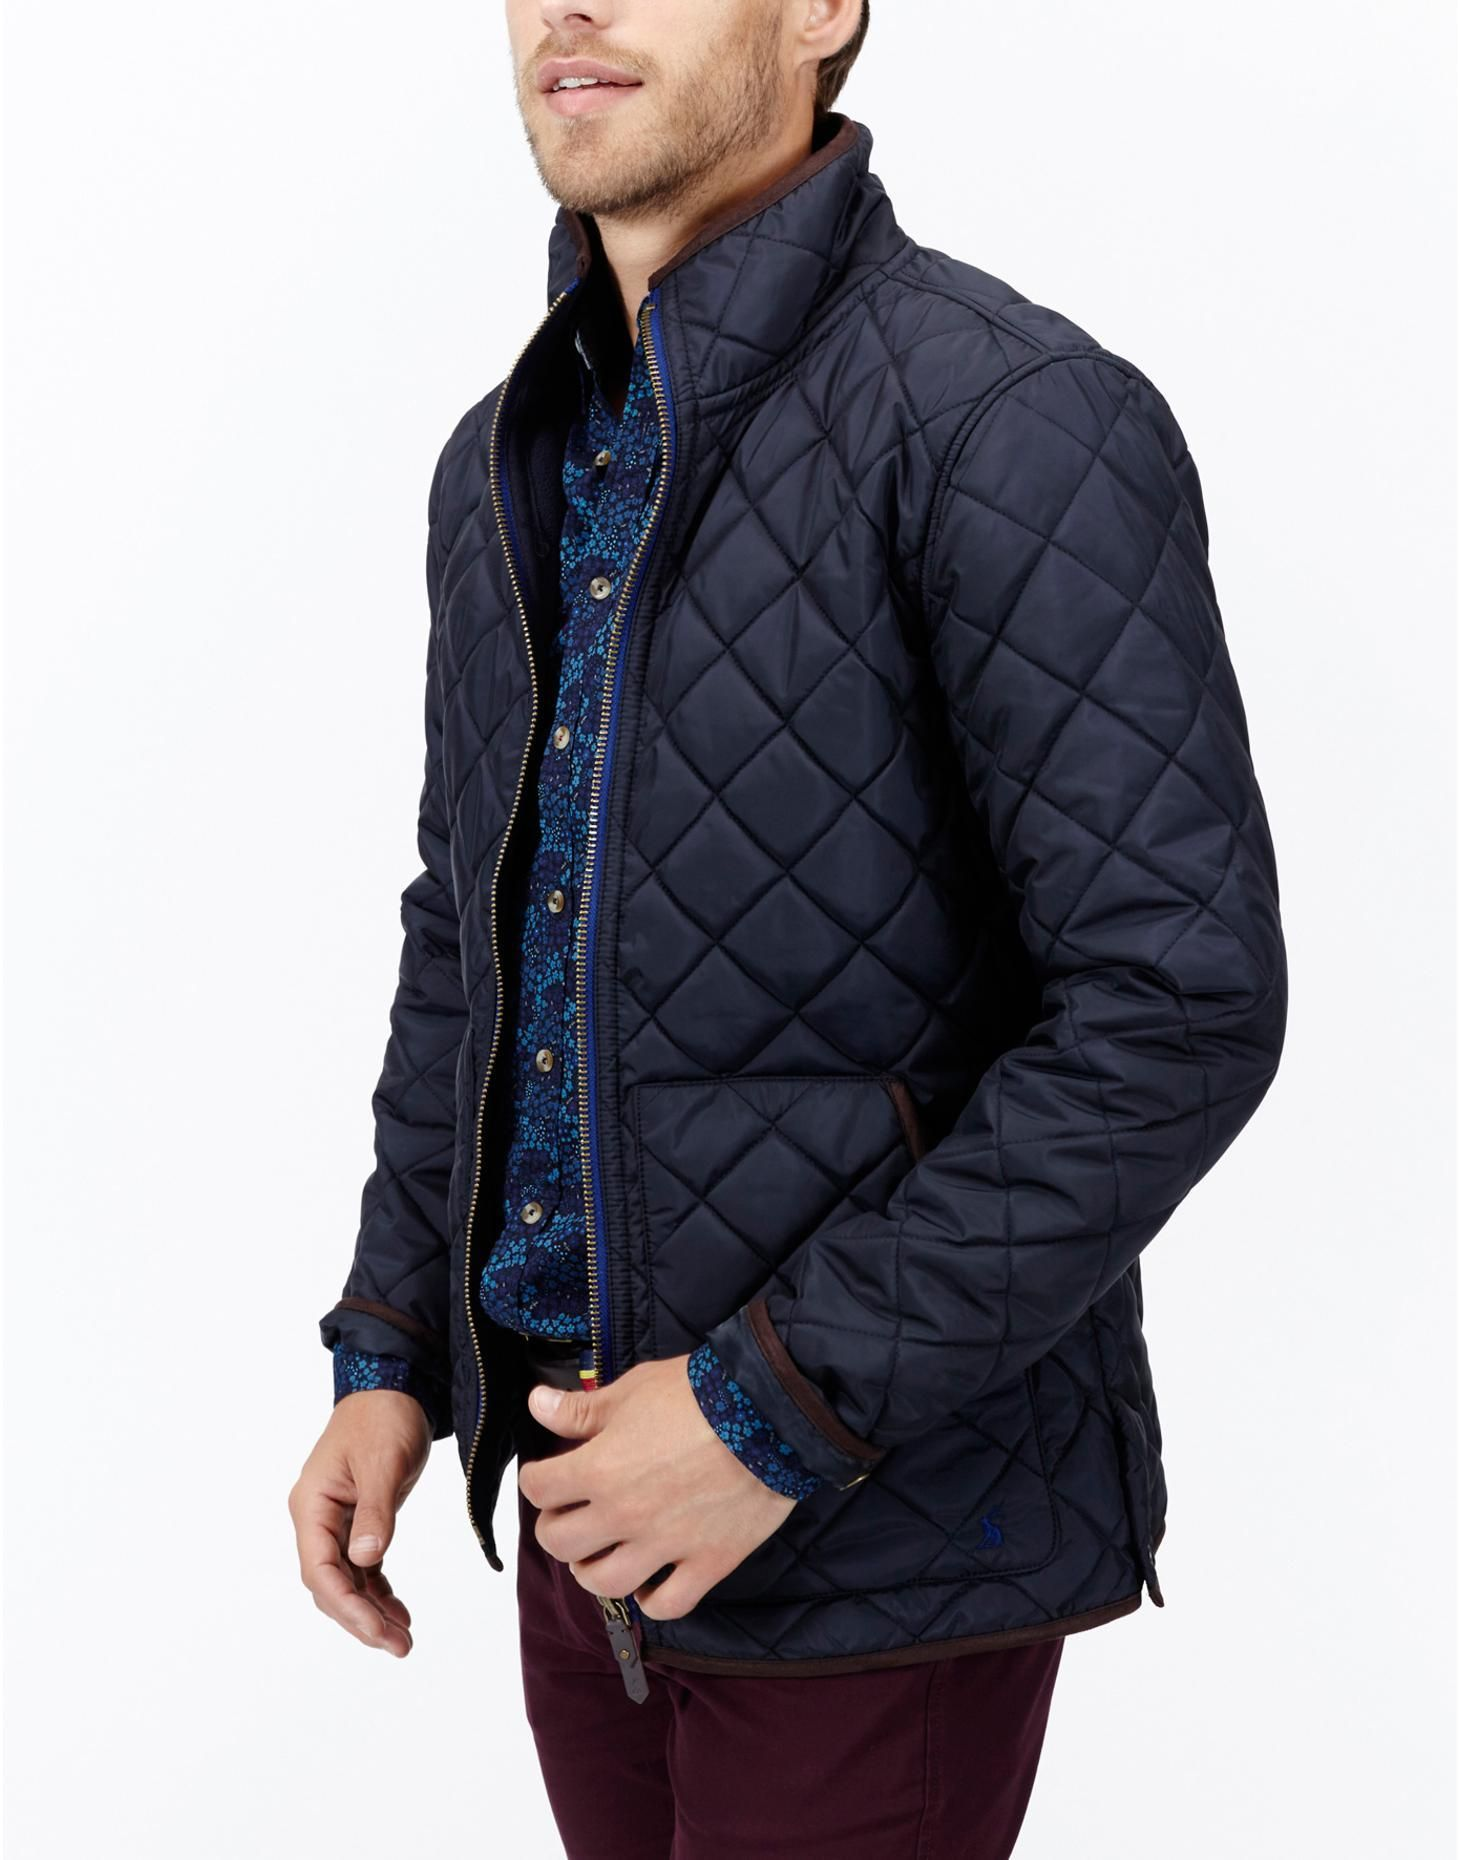 PENBURY Men's Quilted Jacket | Prep | Pinterest | Quilted jacket ... : quilted jacket for mens - Adamdwight.com